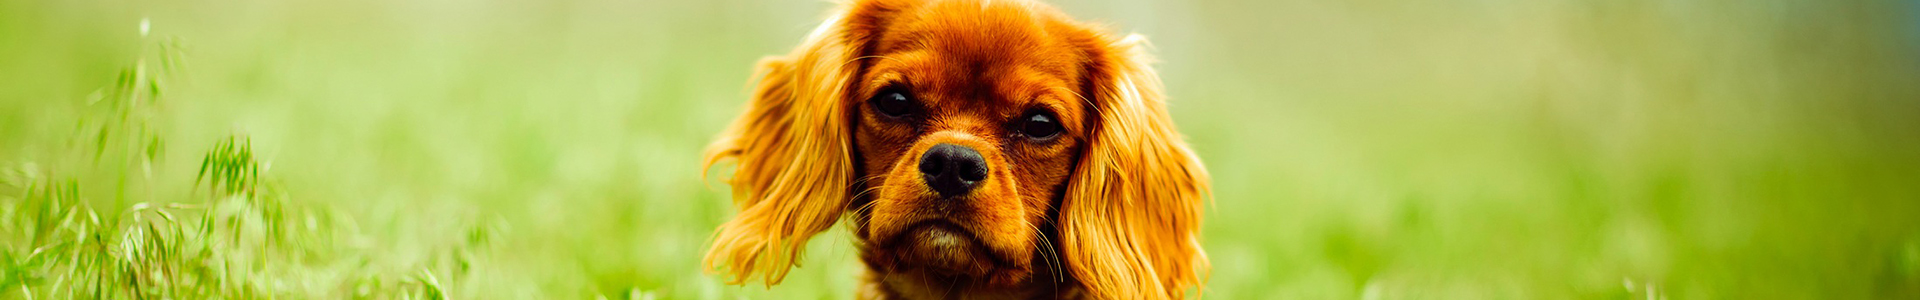 A red Cavalier King Charles Spaniel with sad eyes sits in a field of green grass.